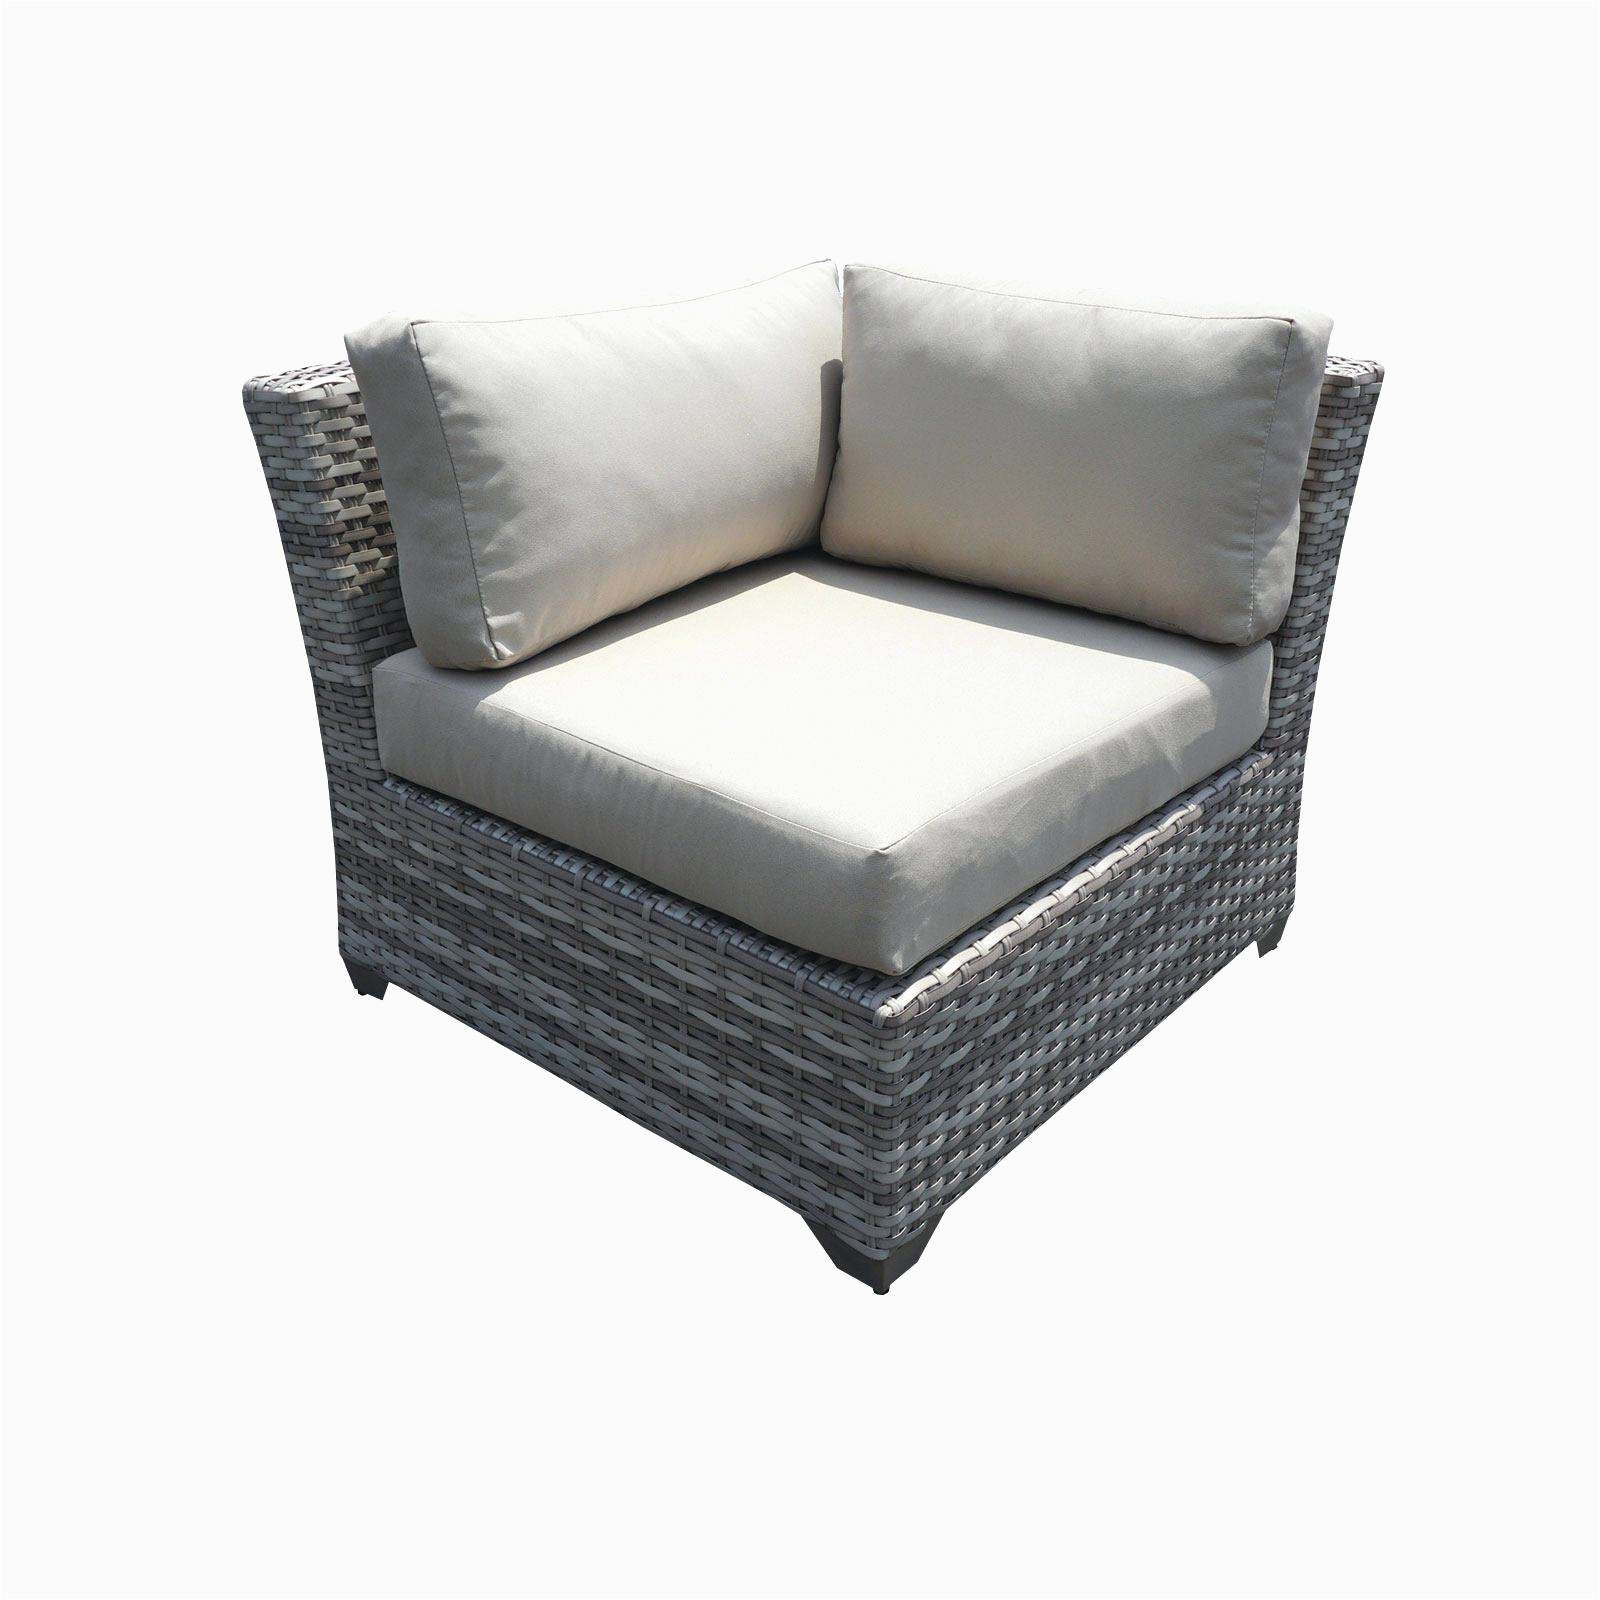 Home Depot Hardwood Floor Installation Of Home Depot Legs Wood sofa Www topsimages Com within Replacement Chair Legs Home Depot Chair Home Depot Bench Marvelous Wicker Outdoor sofa Patio Jpg 1600x1600